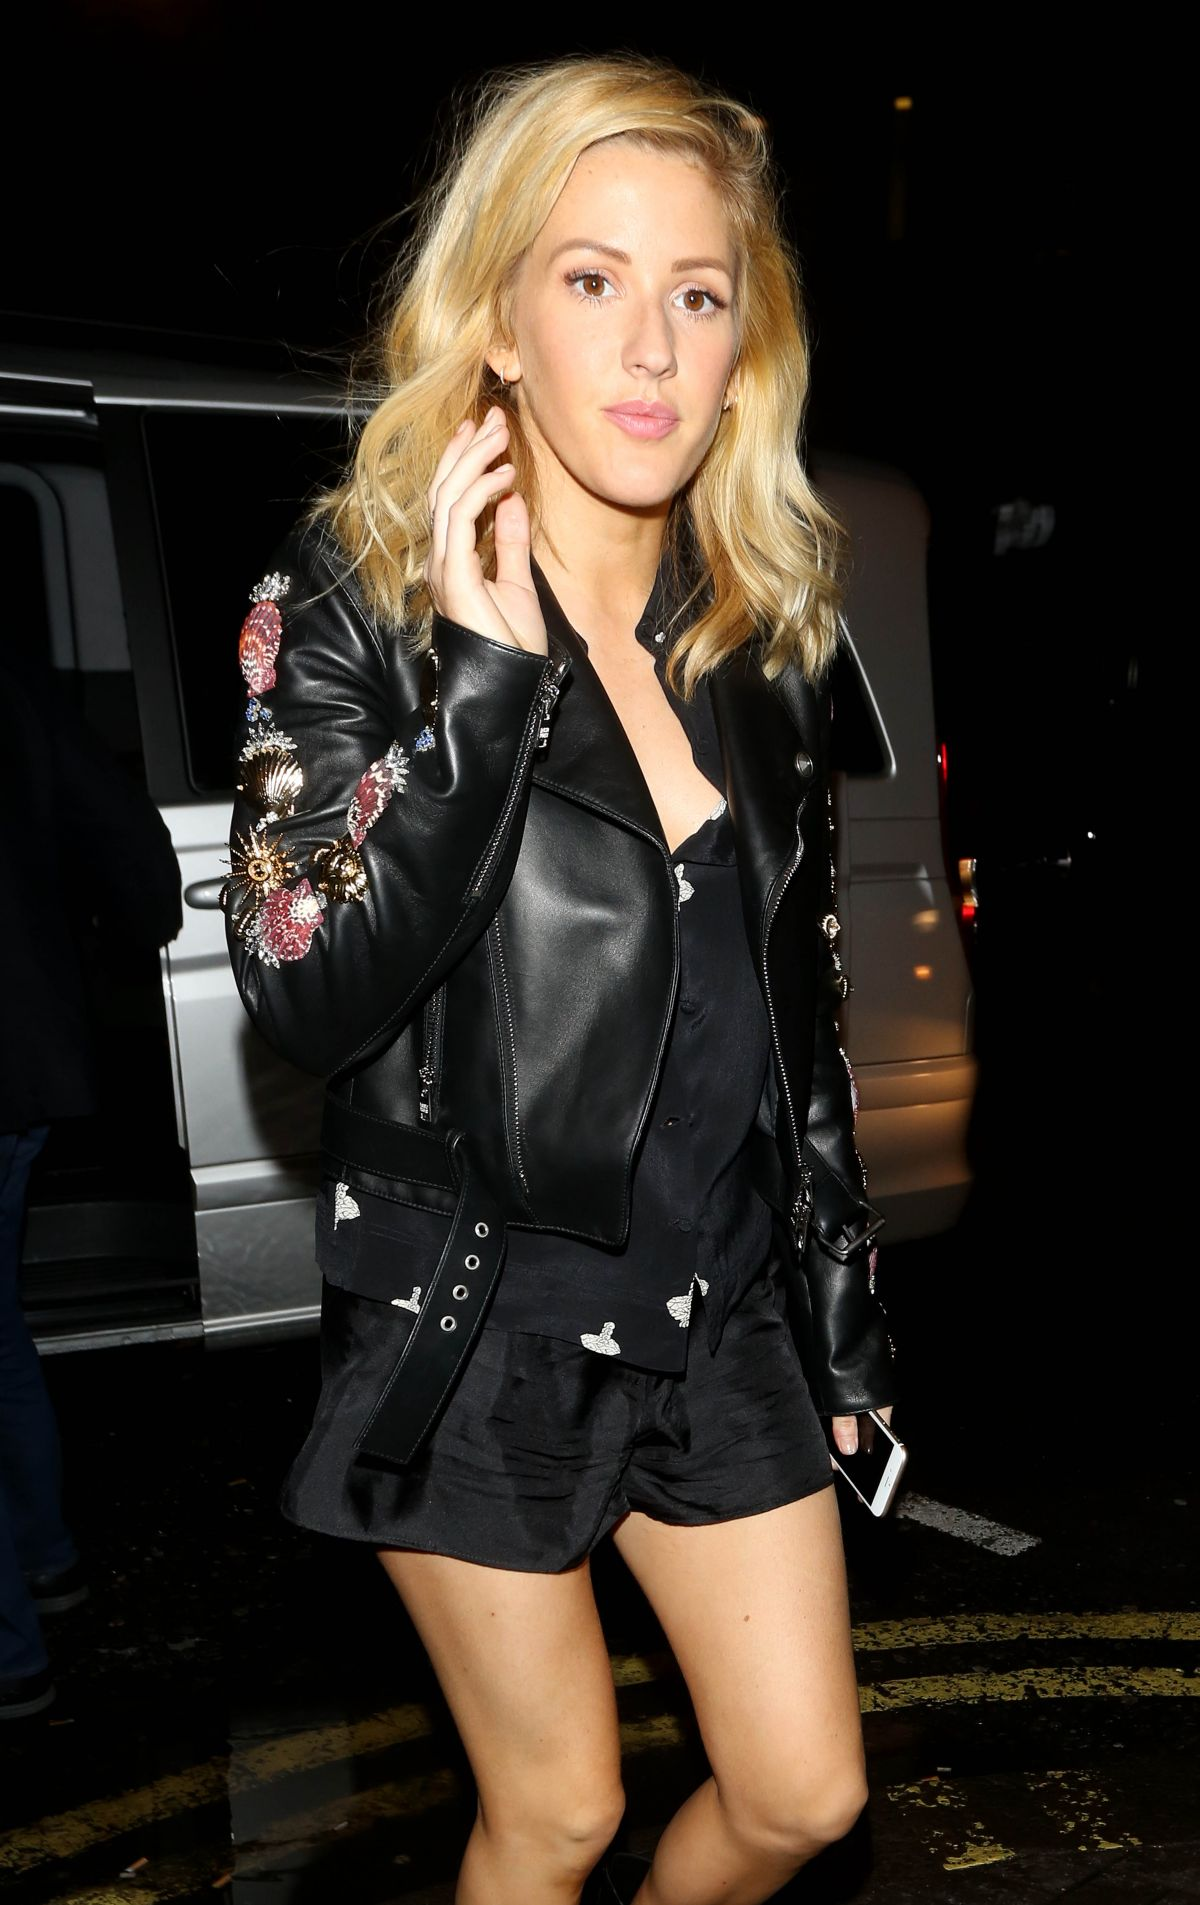 Ellie goulding sexy